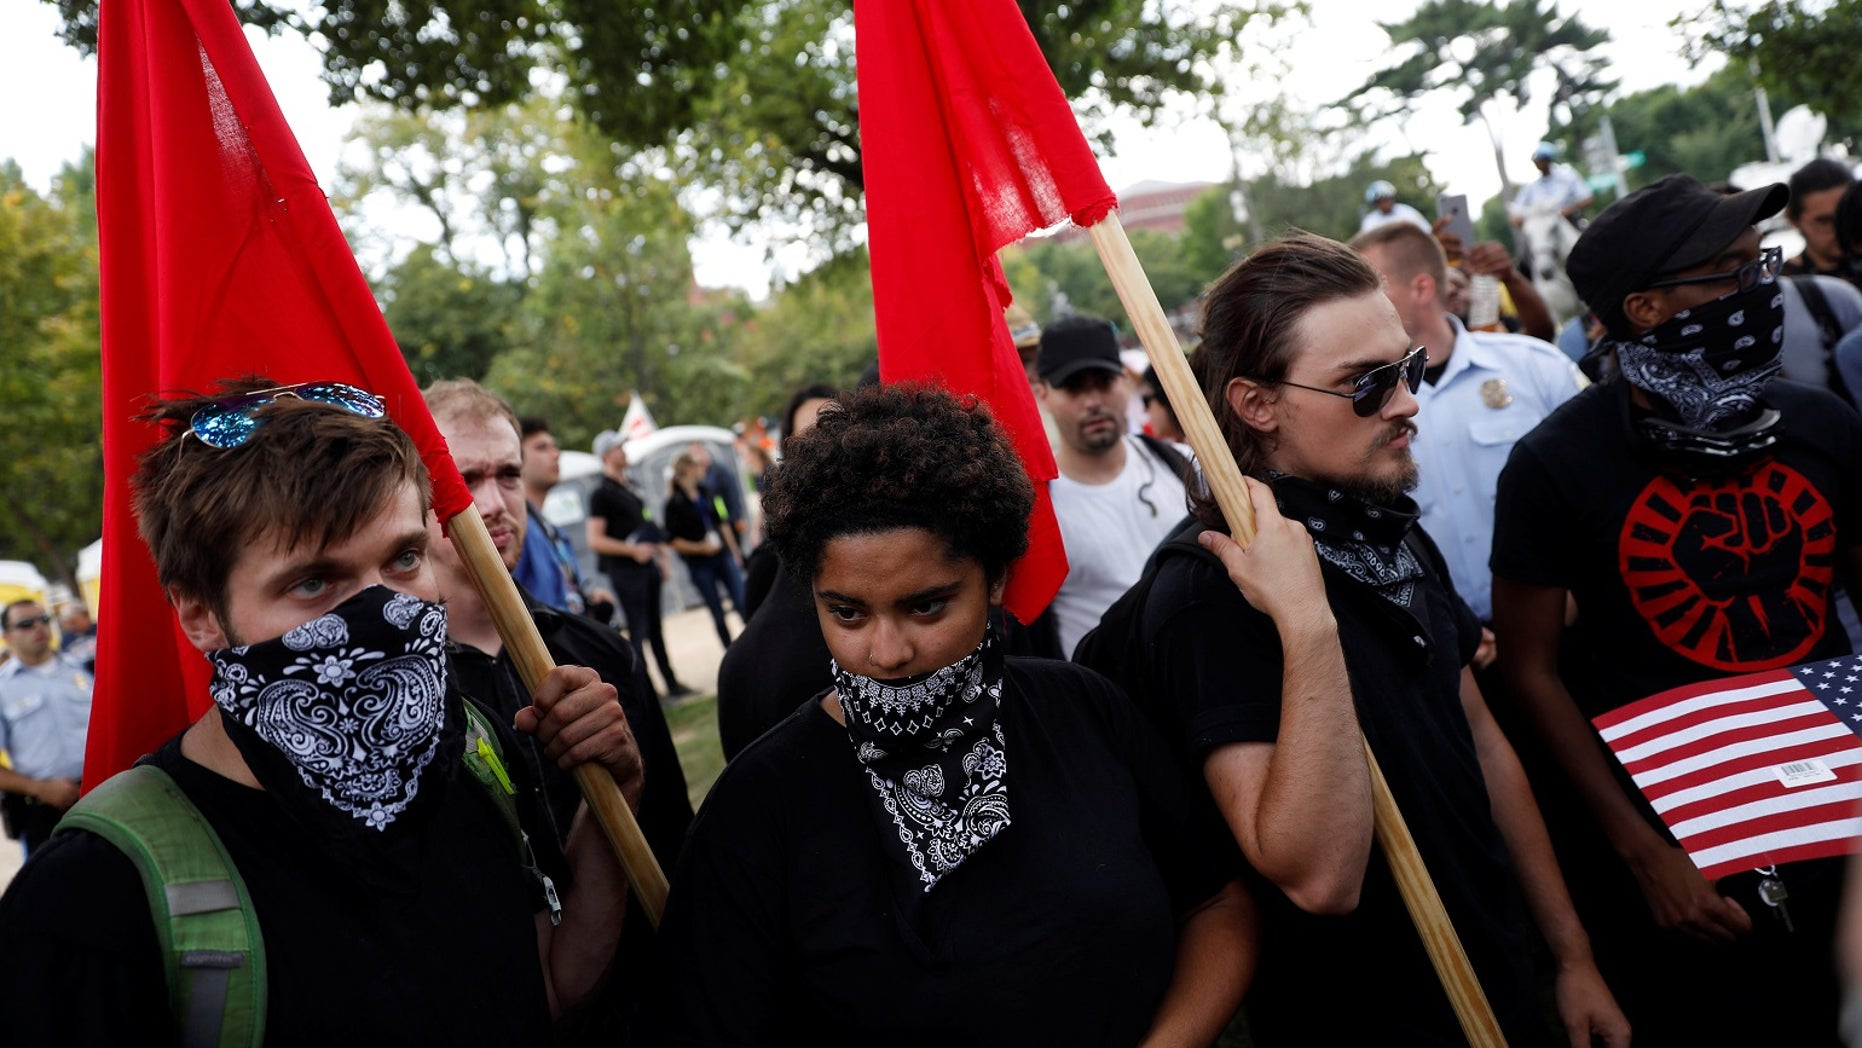 Antifa supporters participate in a protest on the National Mall in Washington, D.C.